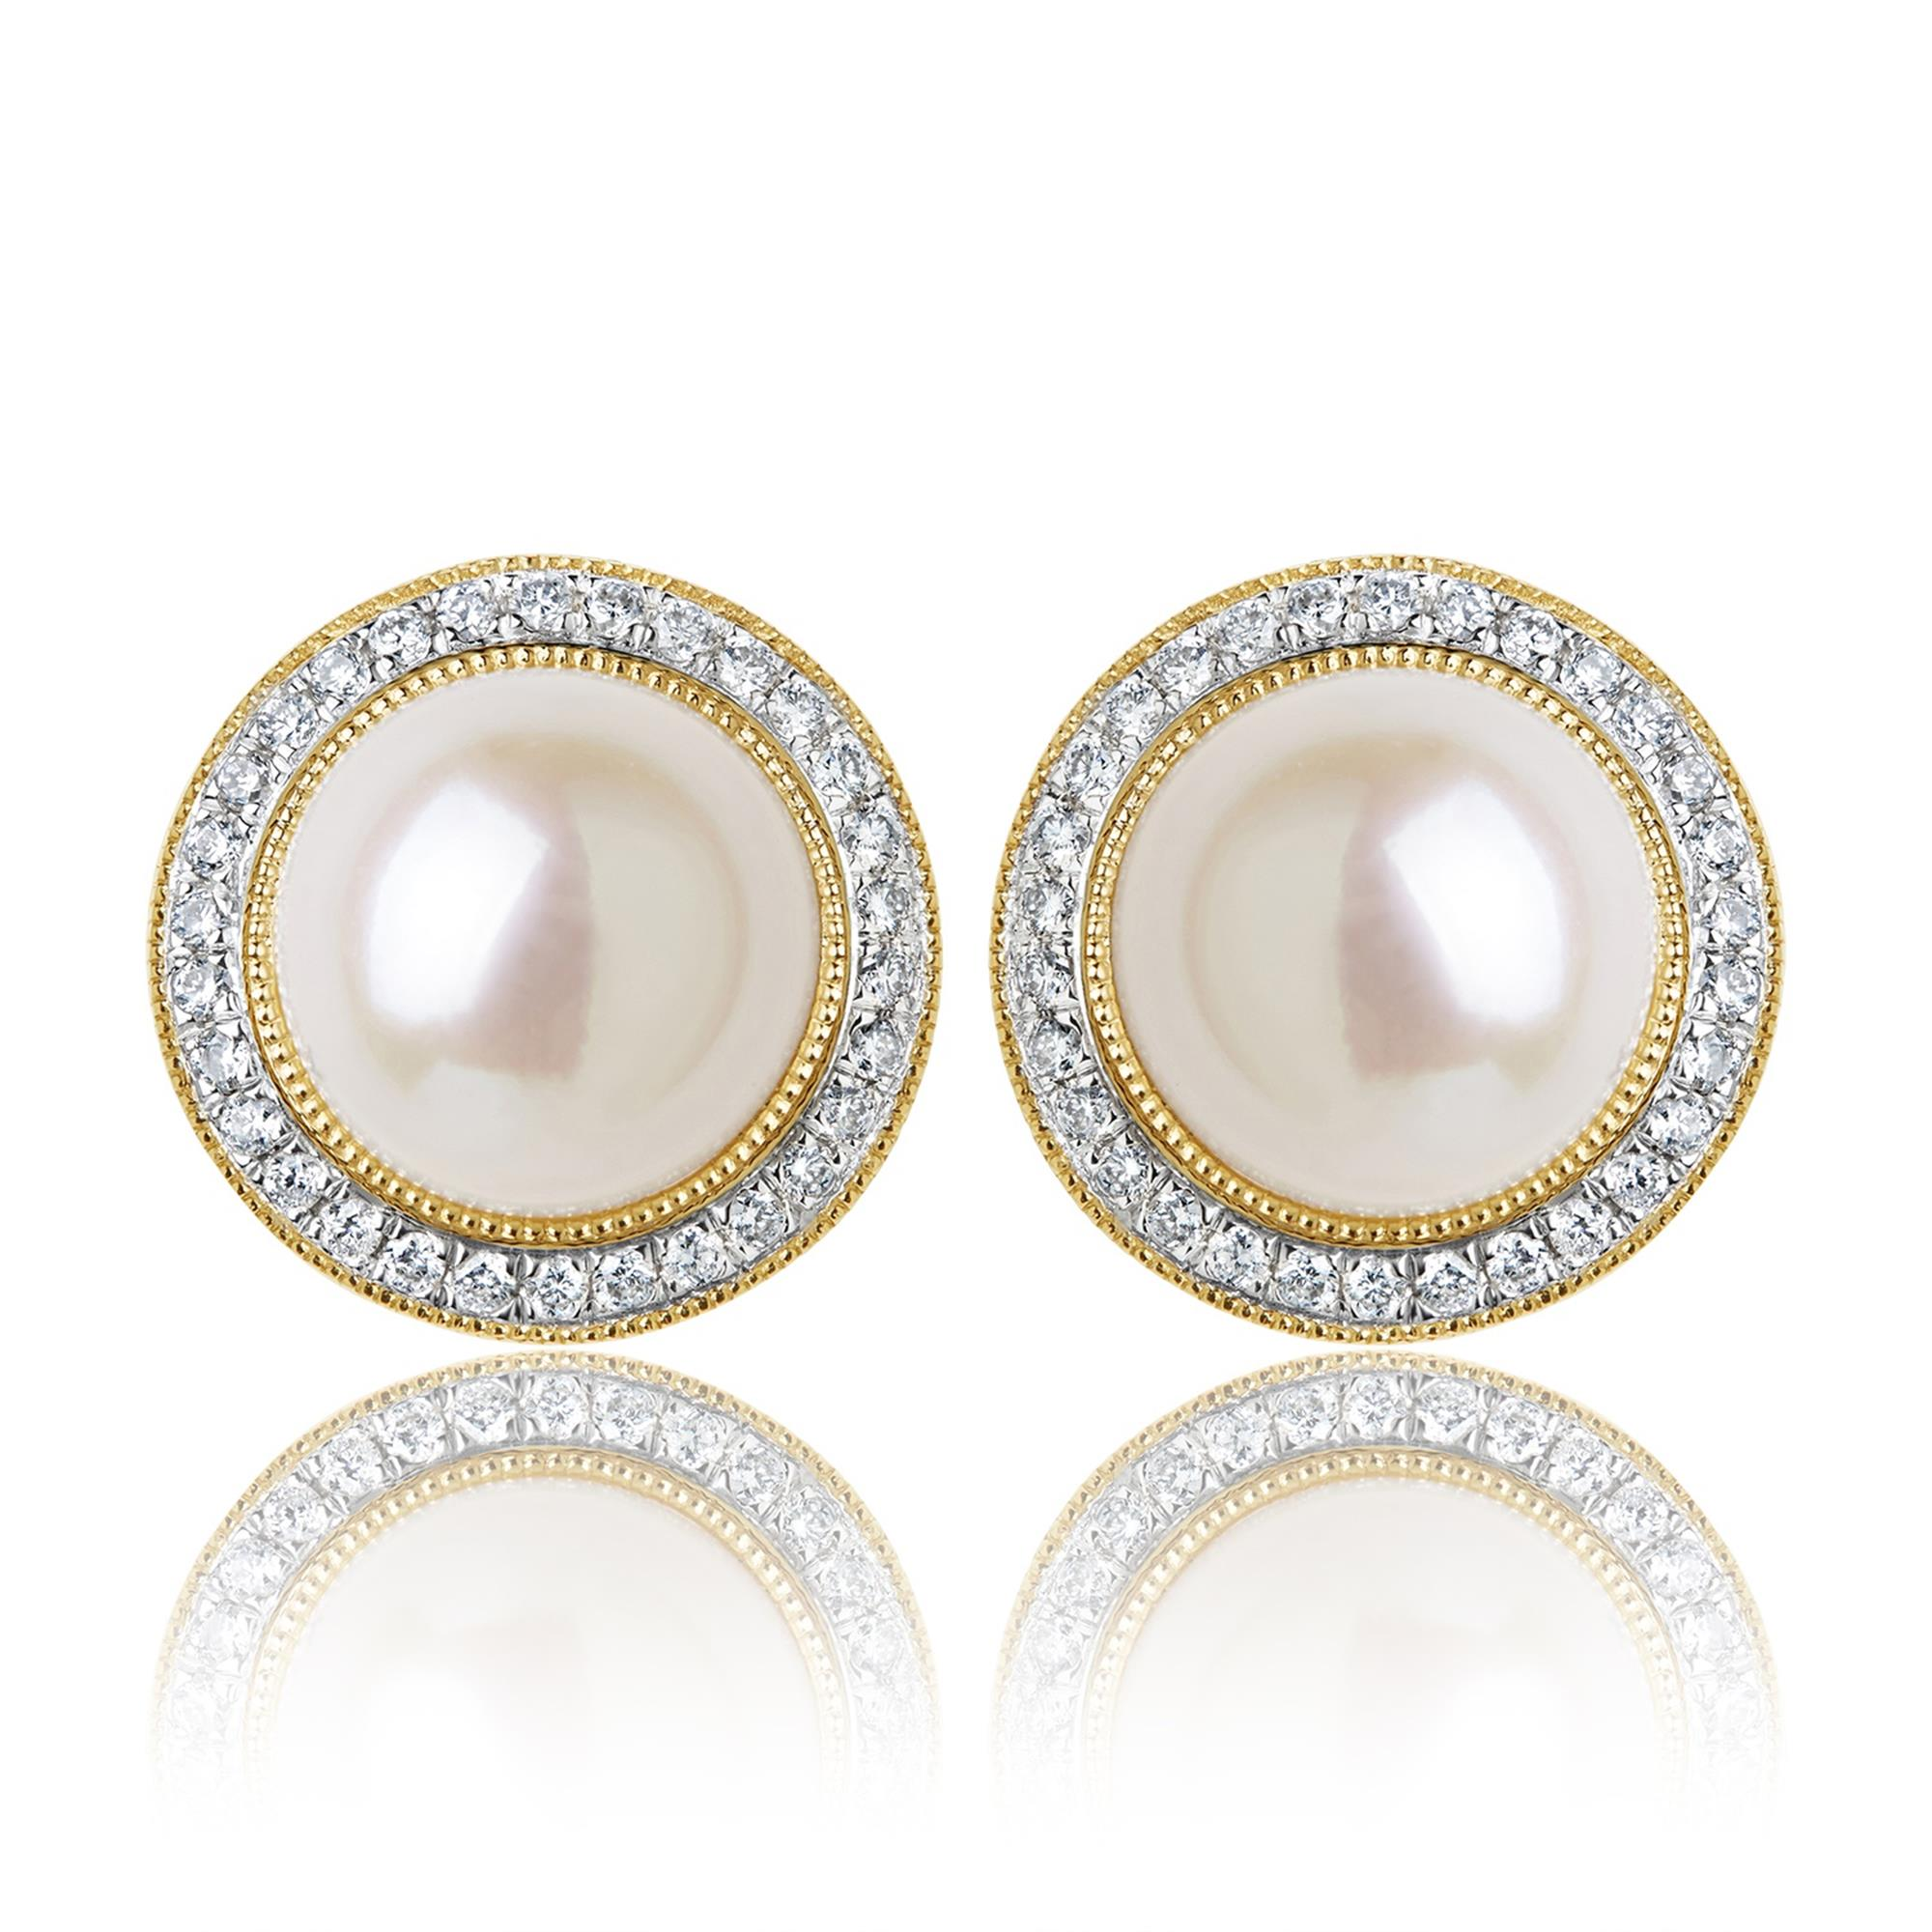 8b4fb4eed 18ct Yellow Gold Pearl and Diamond Halo Earrings | Pravins Jewellers